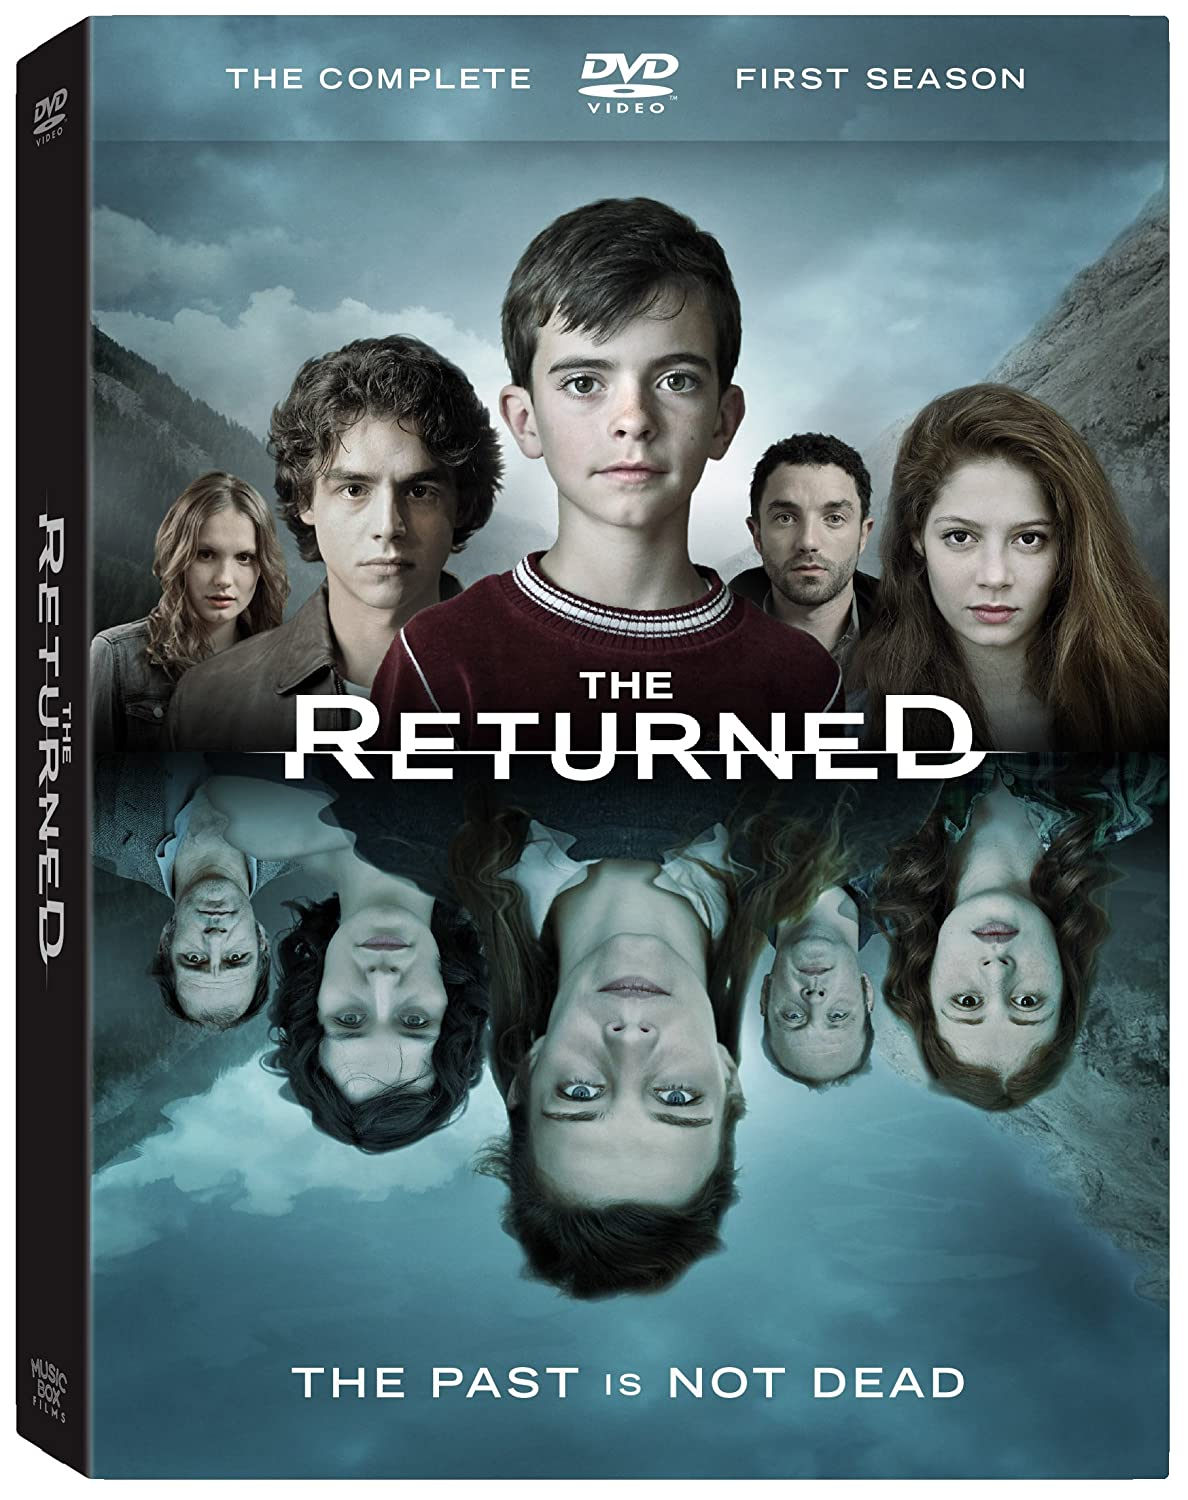 The Returned (Les Revenants)